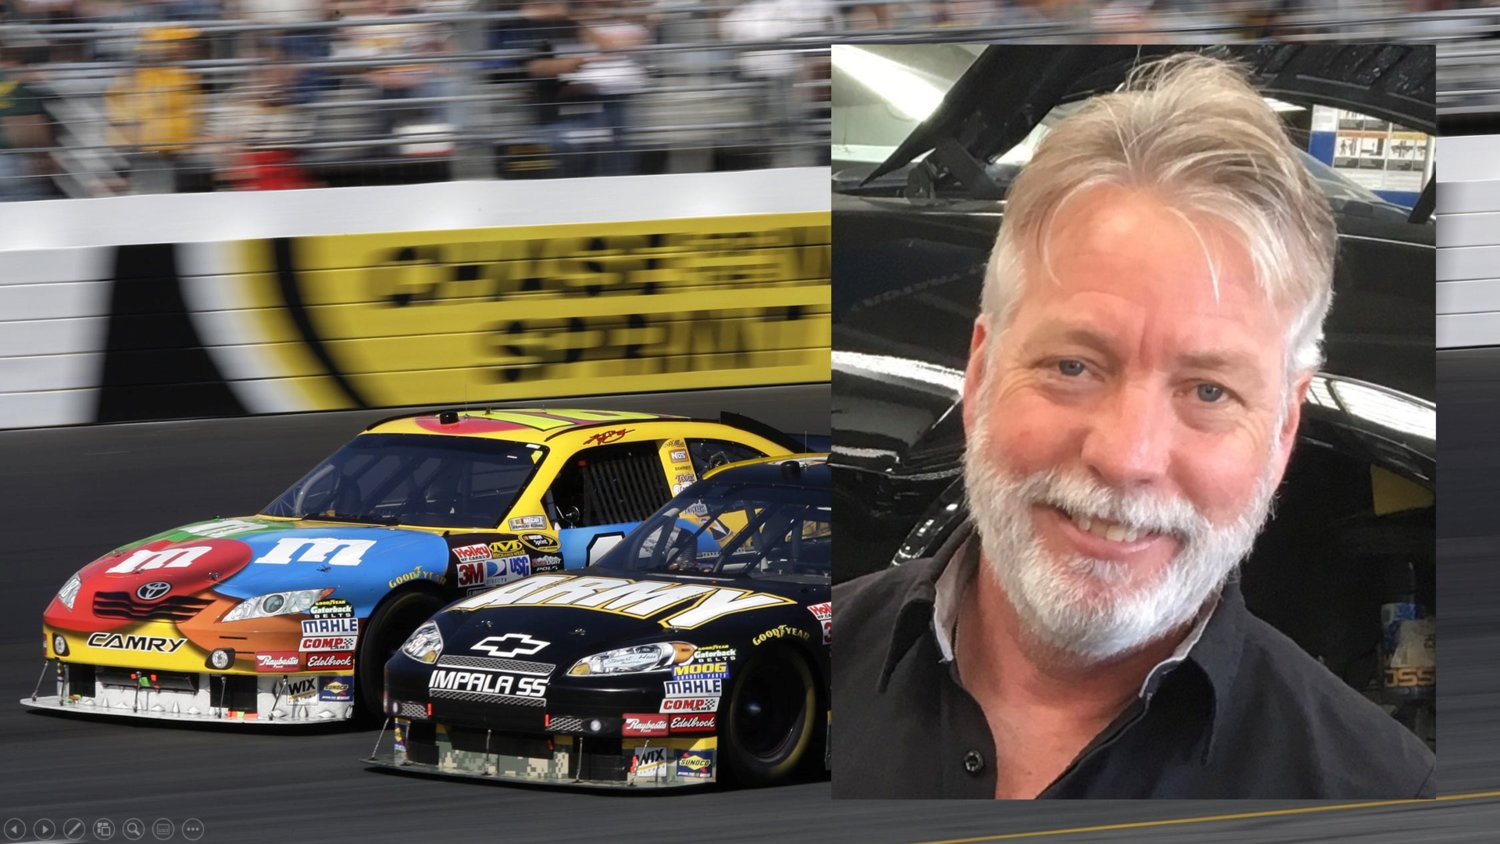 Dennis was a lover of cars and racing and will be greatly missed by his loved ones.